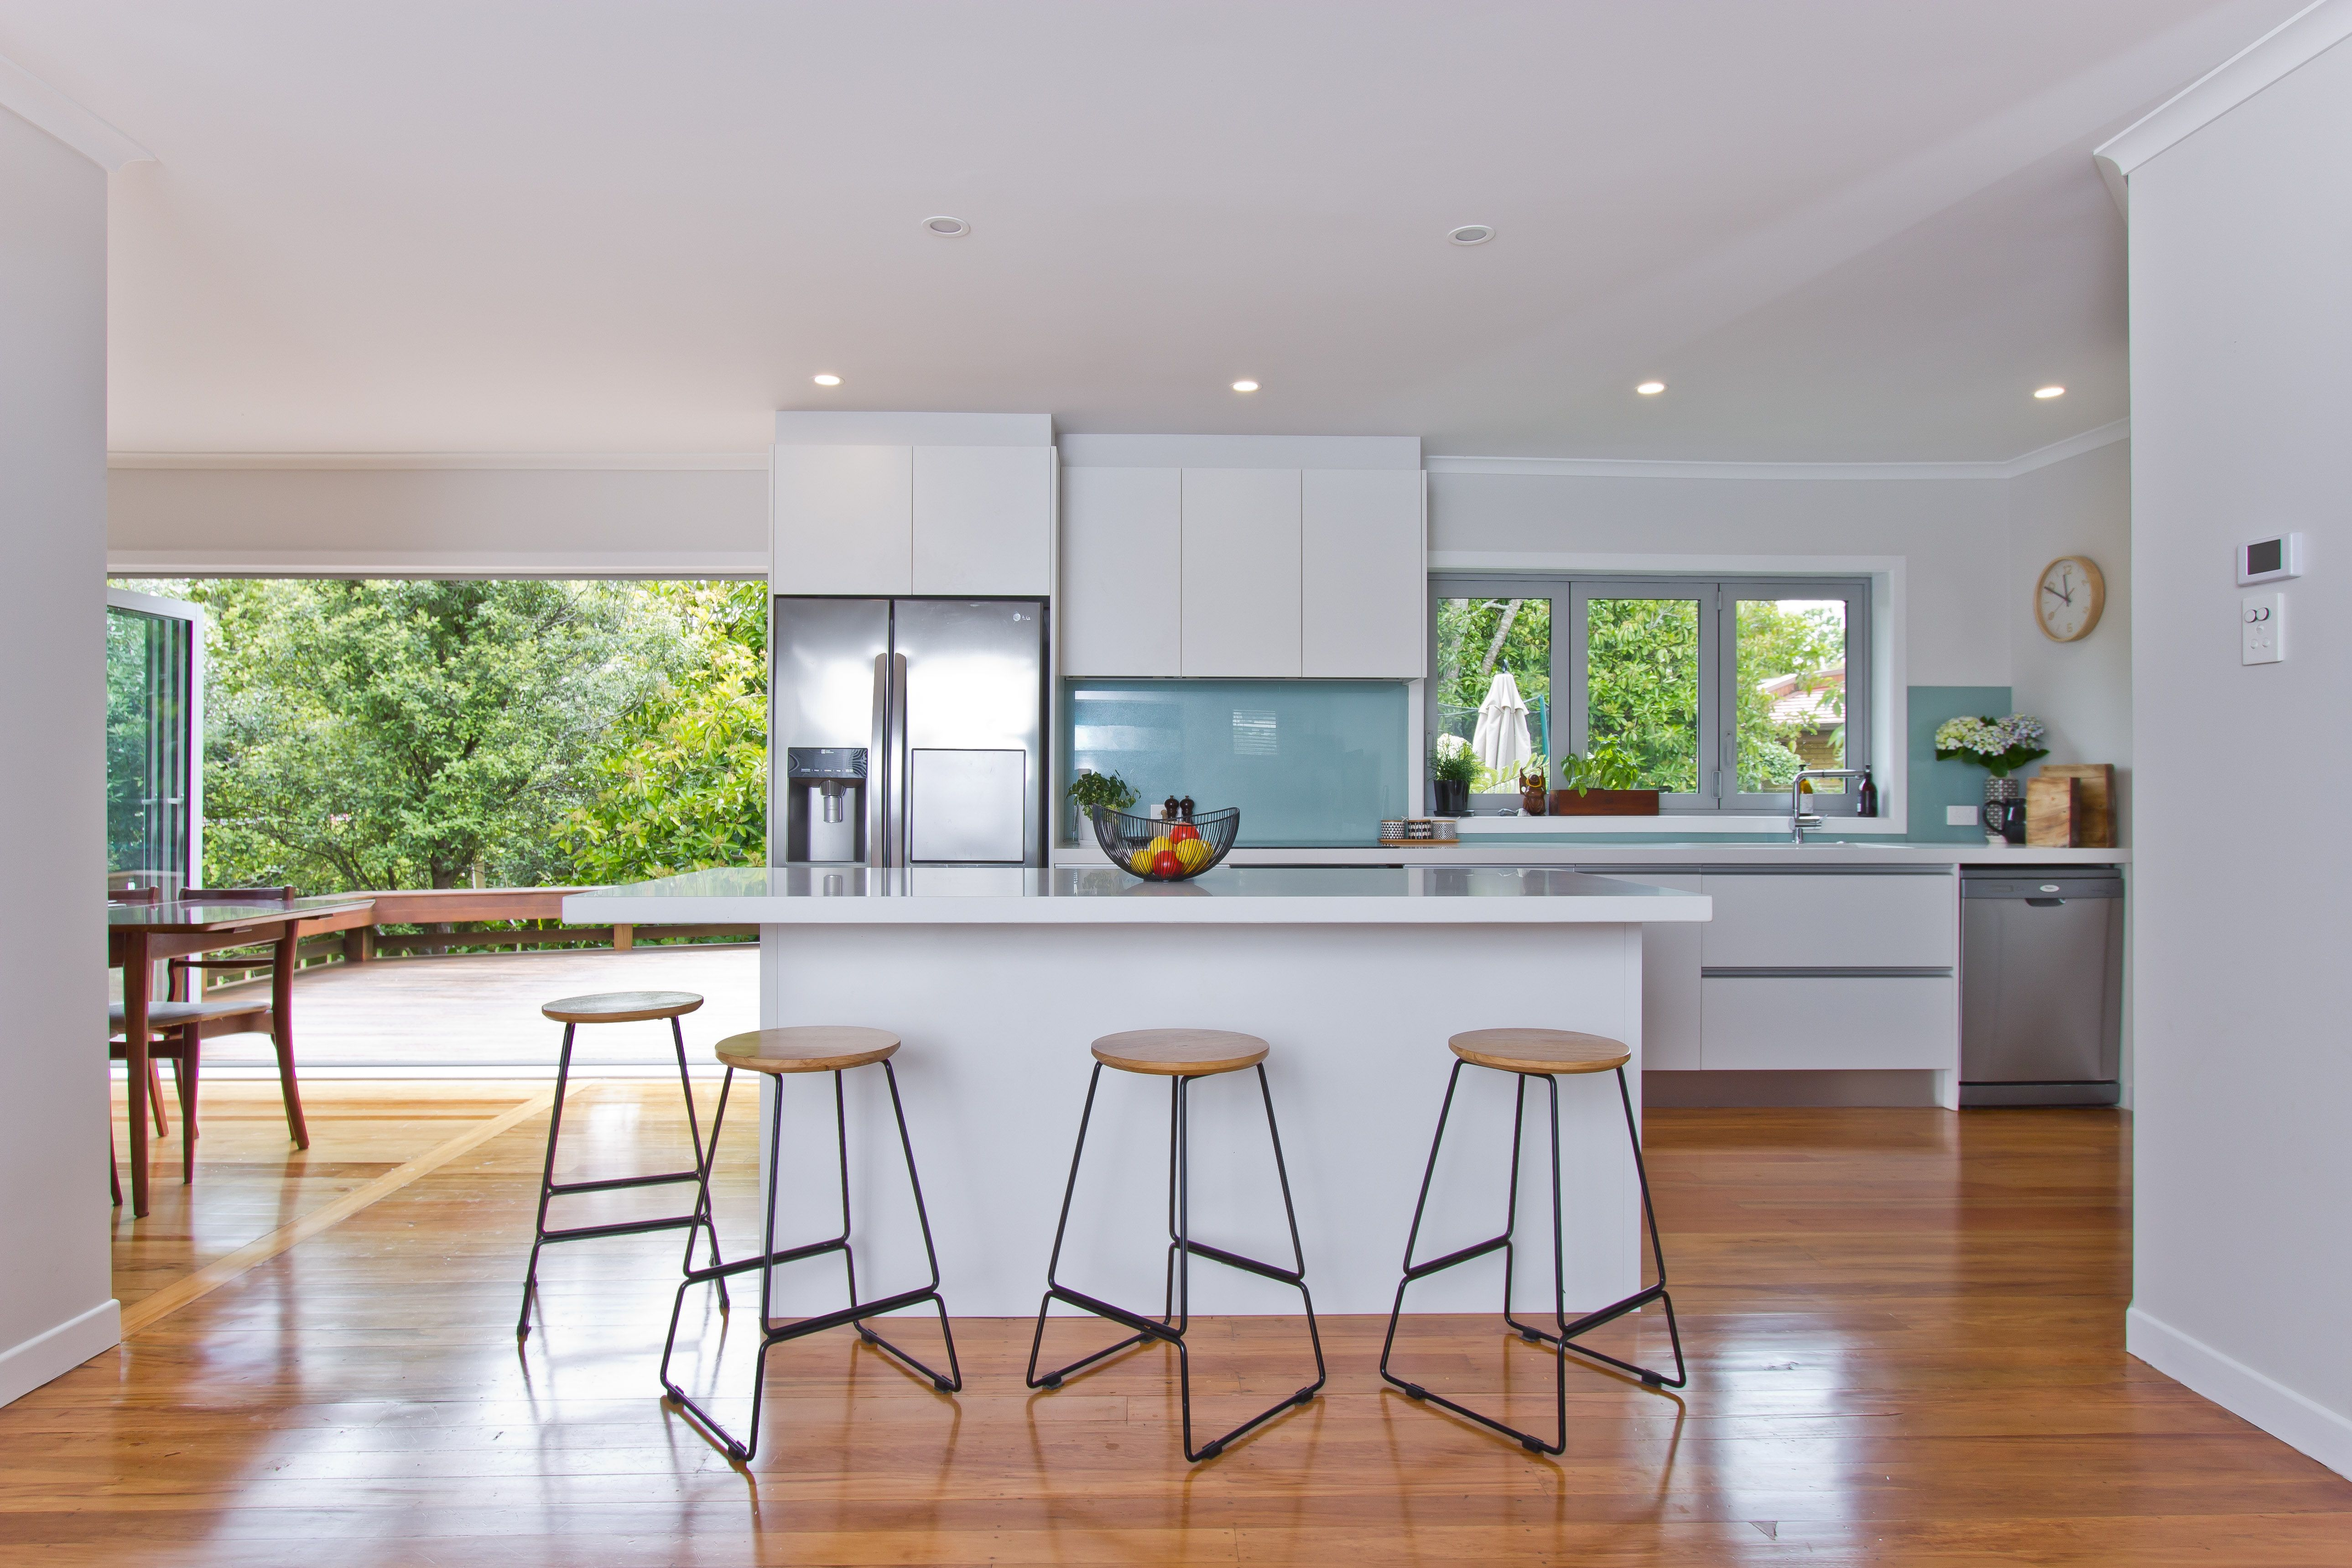 Indoor And Outdoor Flow With An Open Plan Kitchen Dining And Lounge Area In 2020 Open Plan Kitchen Dining Kitchen Dining Living Open Floor Plan Kitchen